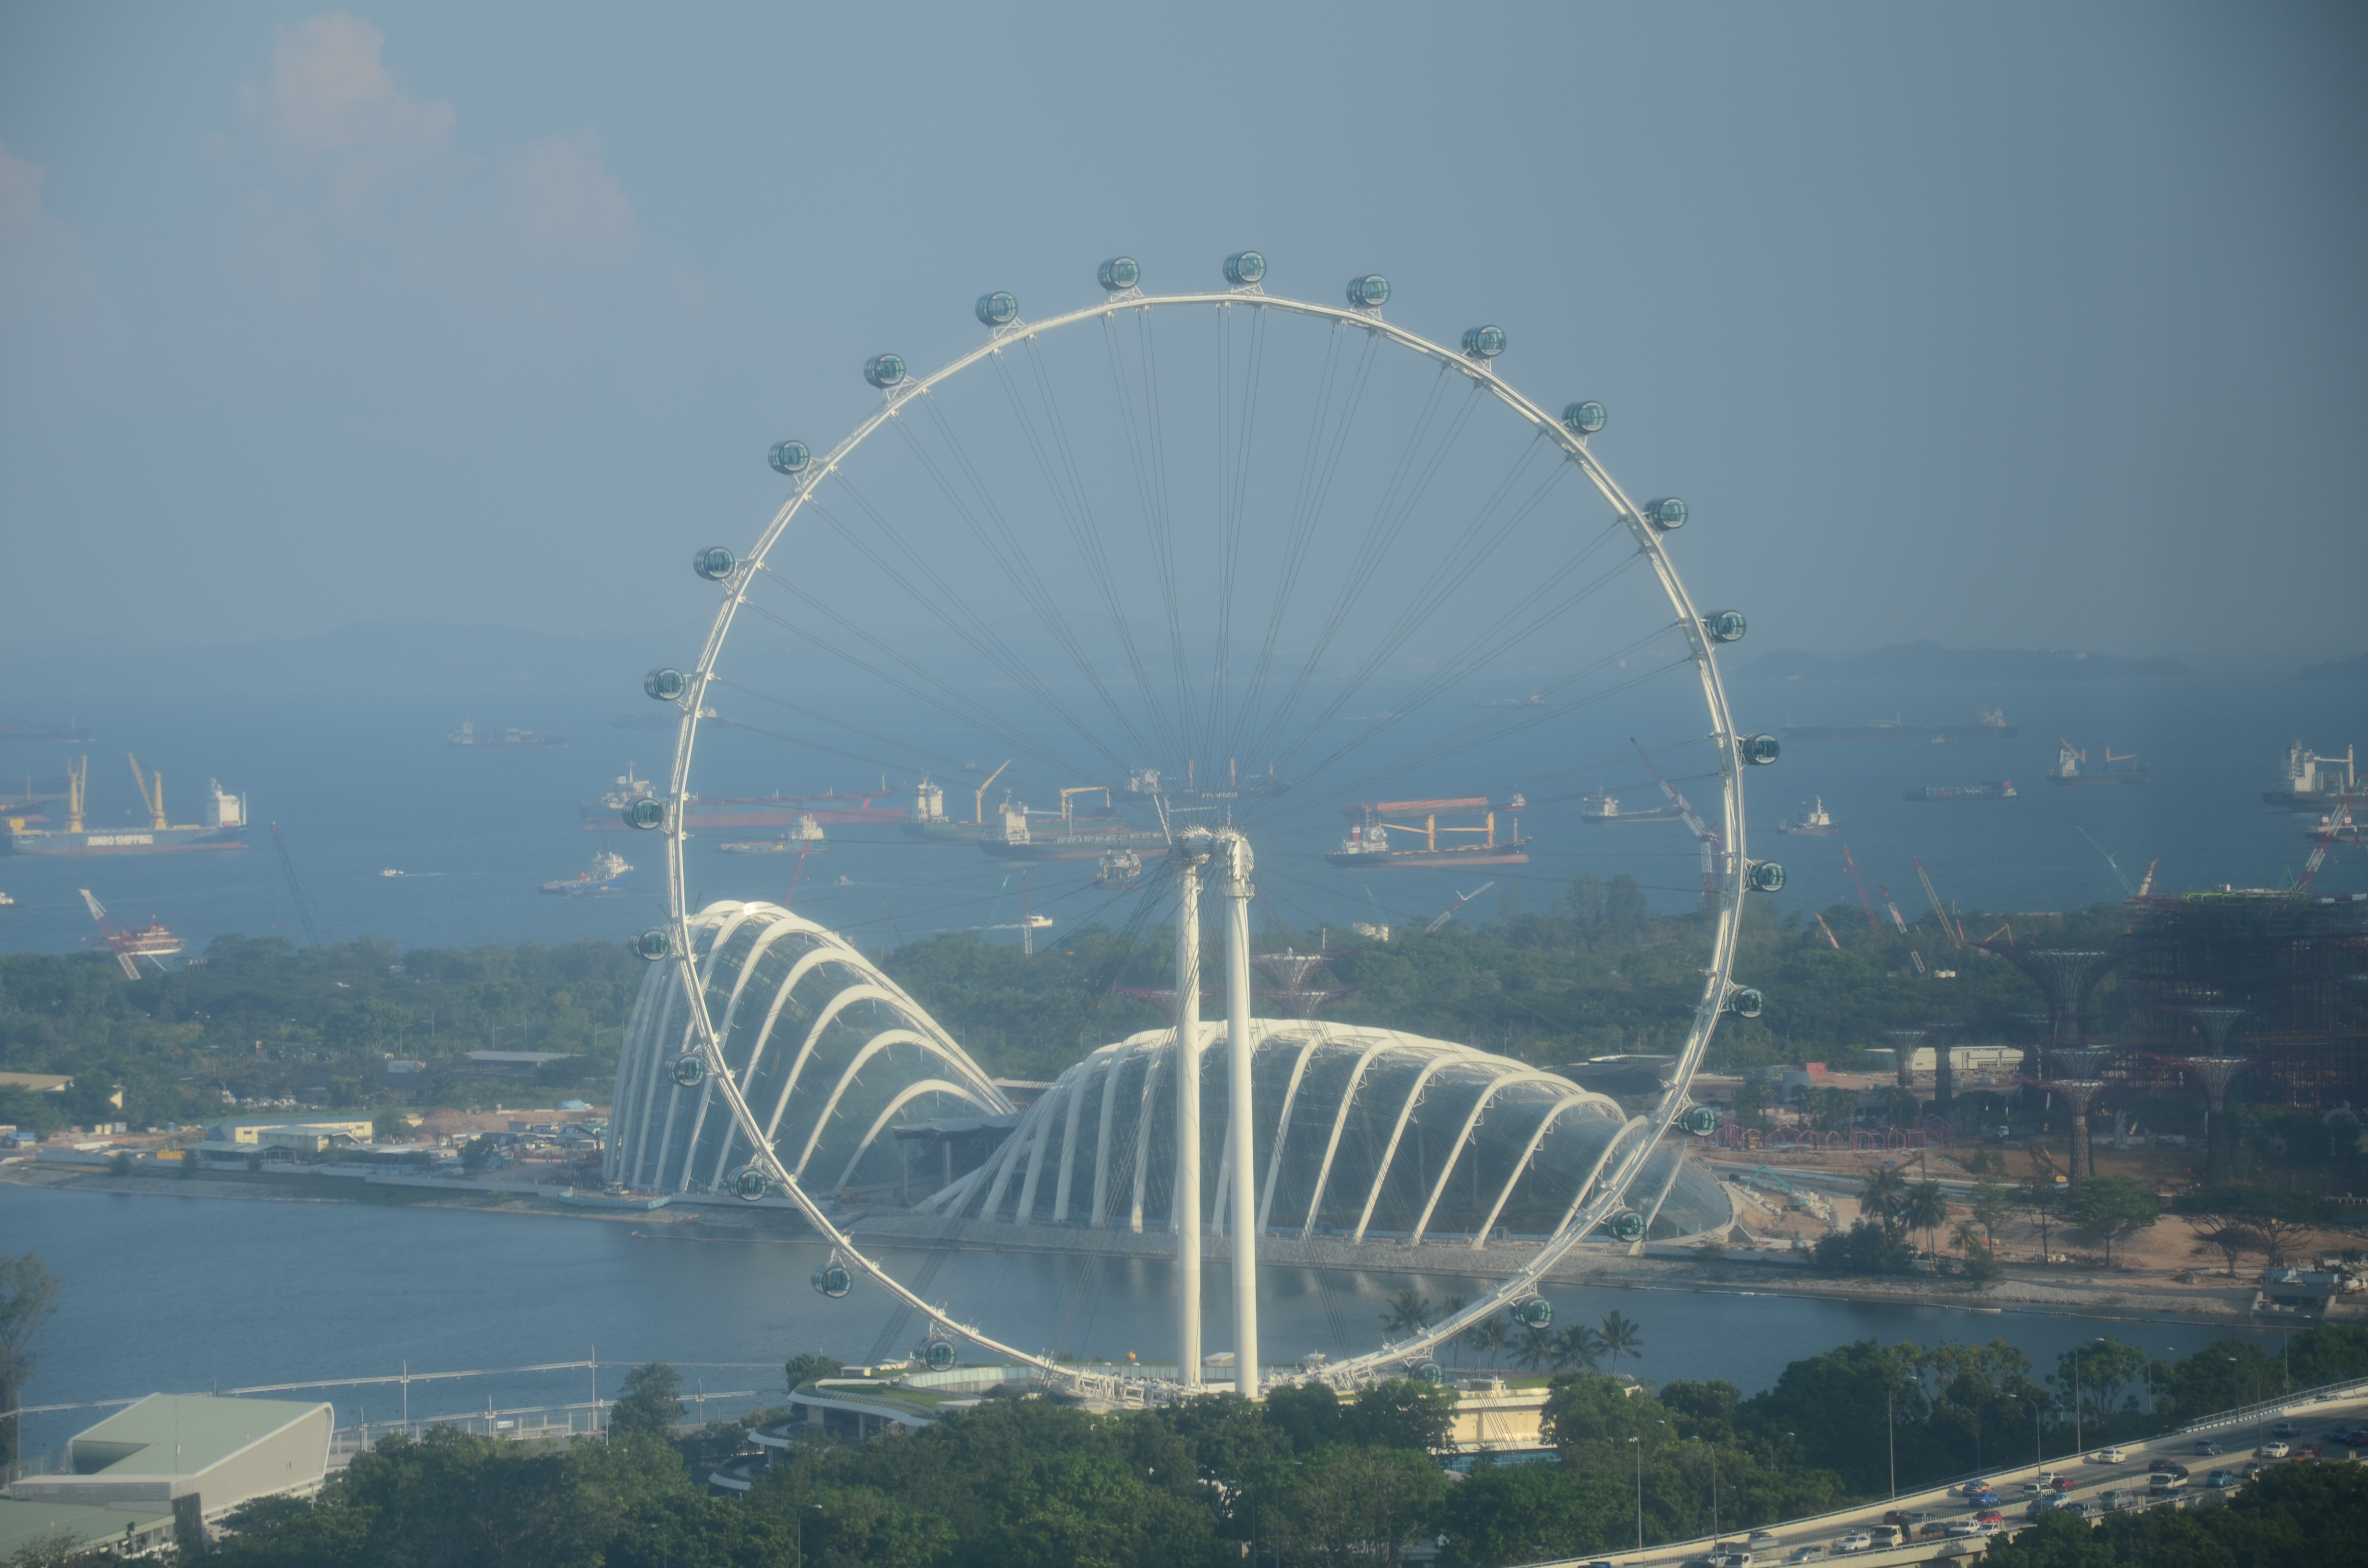 http://www.prasannaholidays.com/wp-content/uploads/2014/05/Singapore_Flyer_and_Gardens_by_the_Bay.jpg